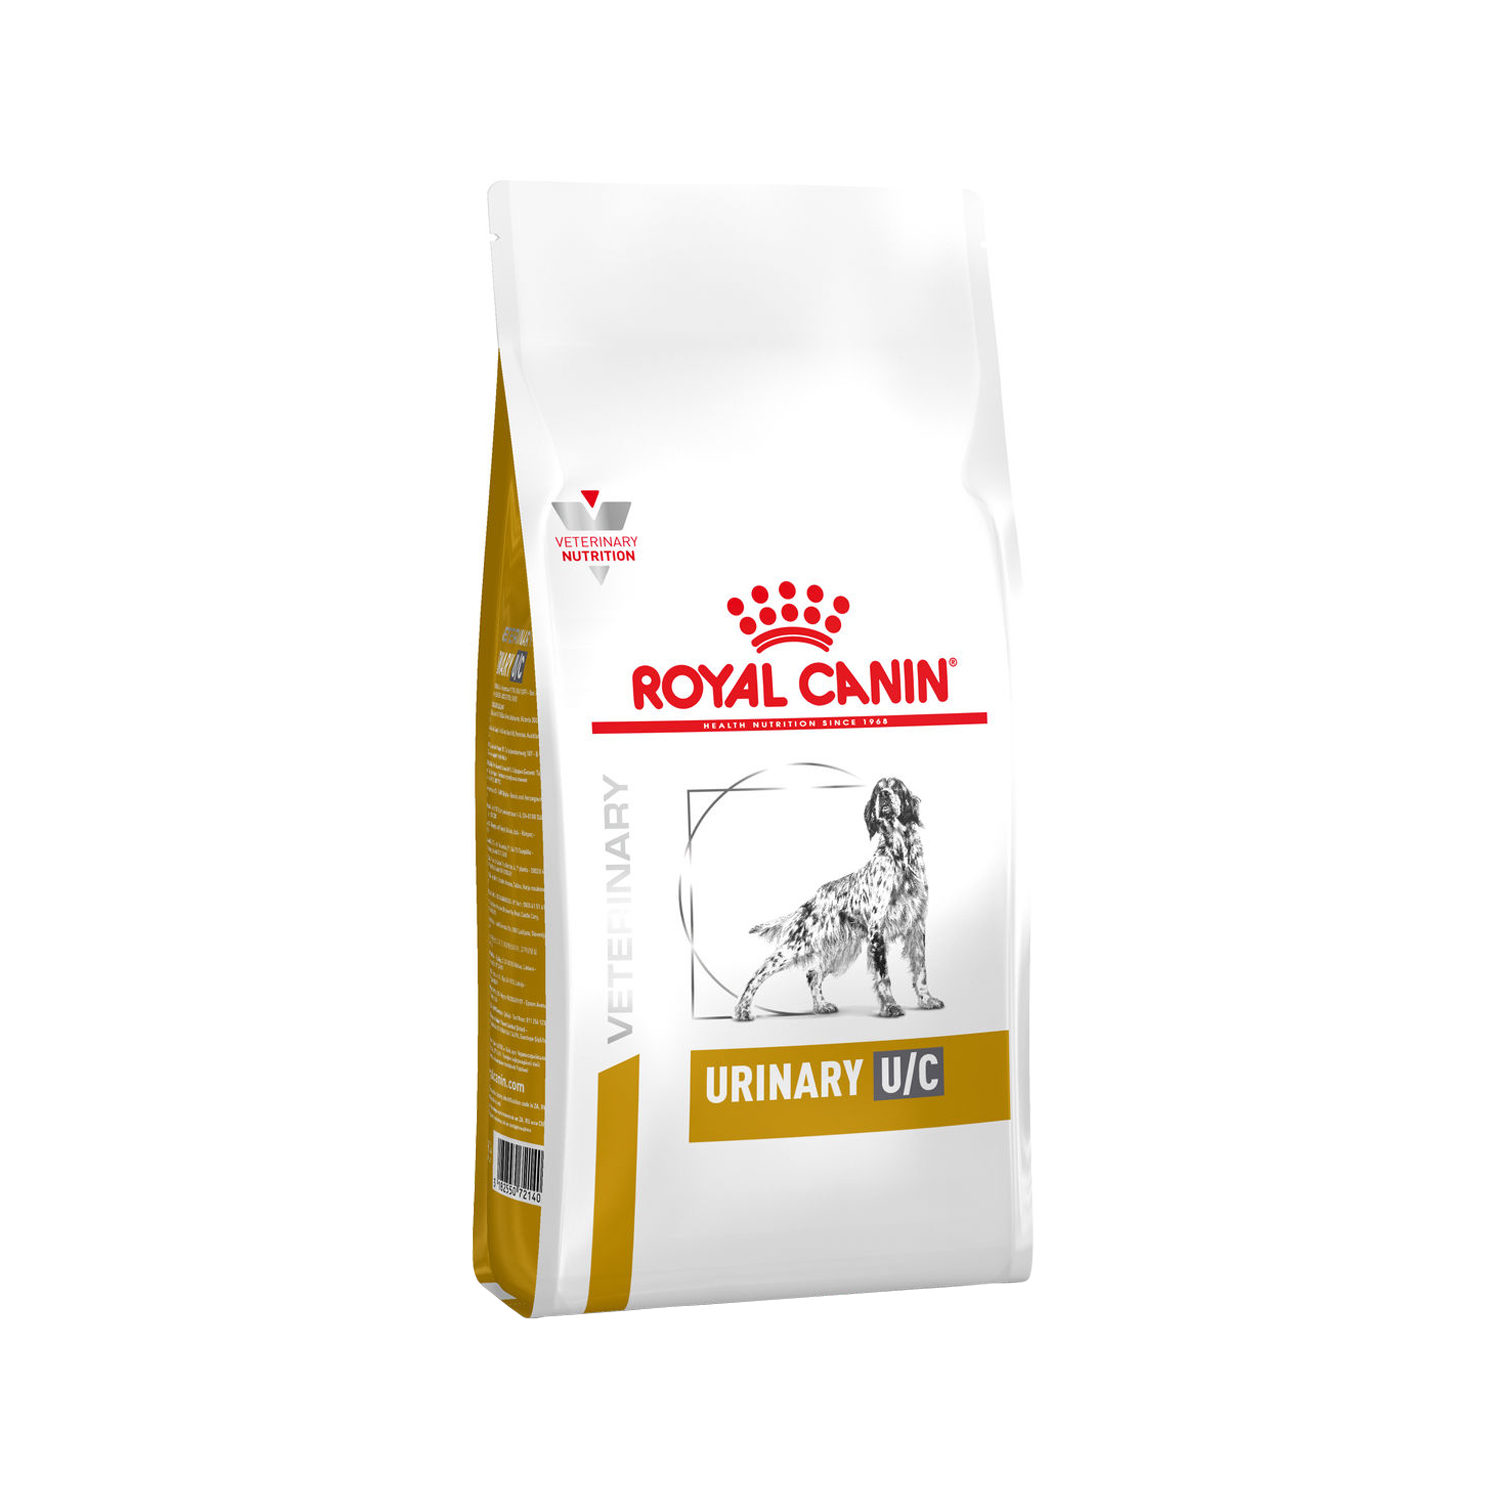 Royal Canin Urinary UC Low Purine Hundefutter